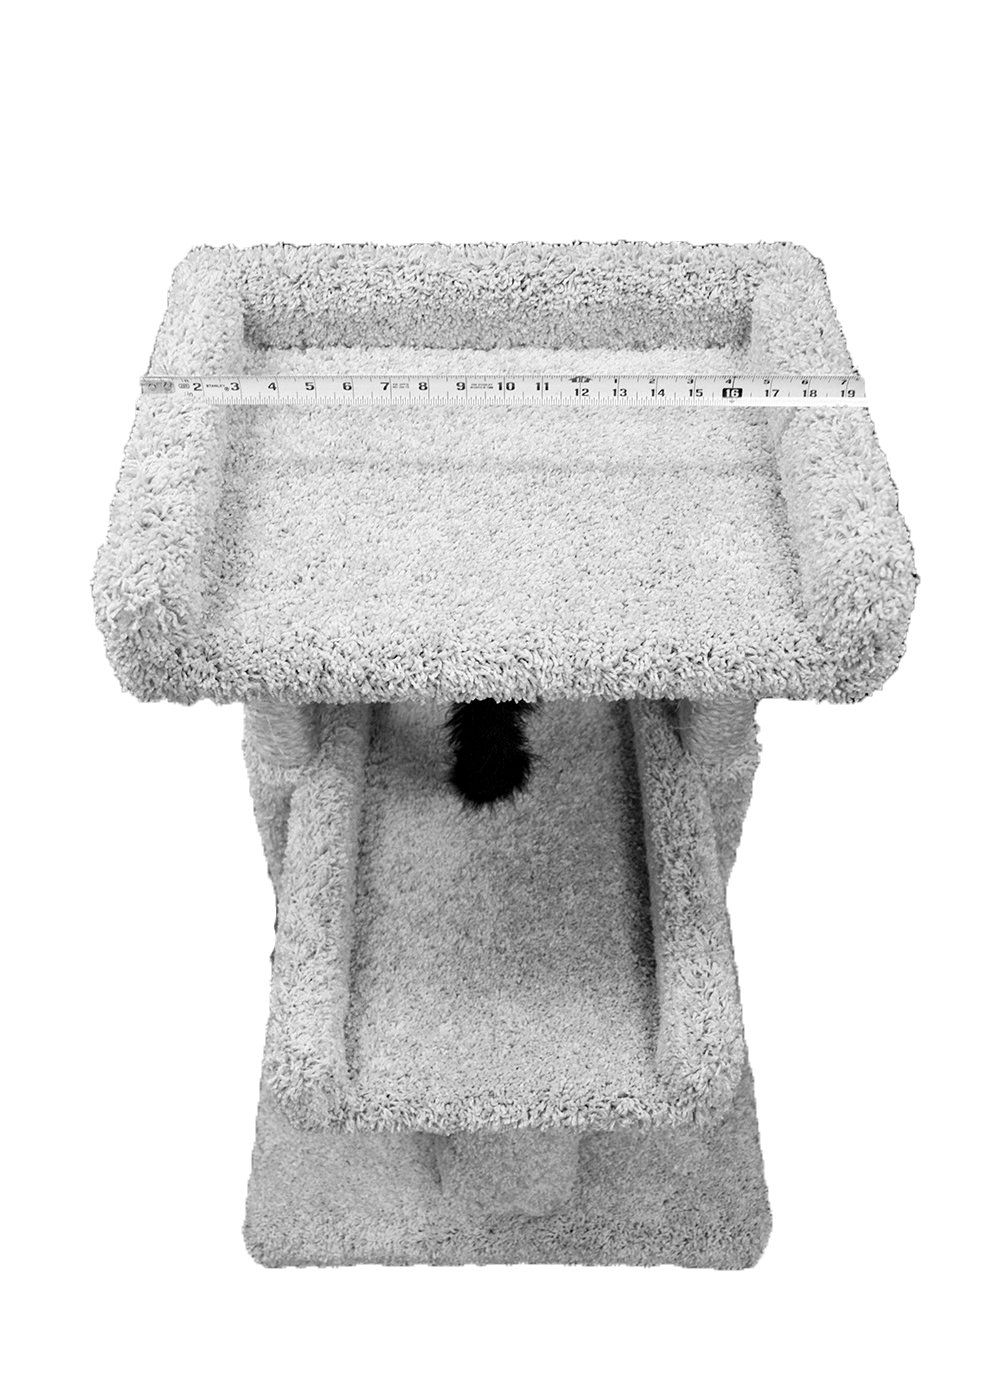 New Cat Condos 110215 Large Cat Play Perch, Large, Neutral by New Cat Condos